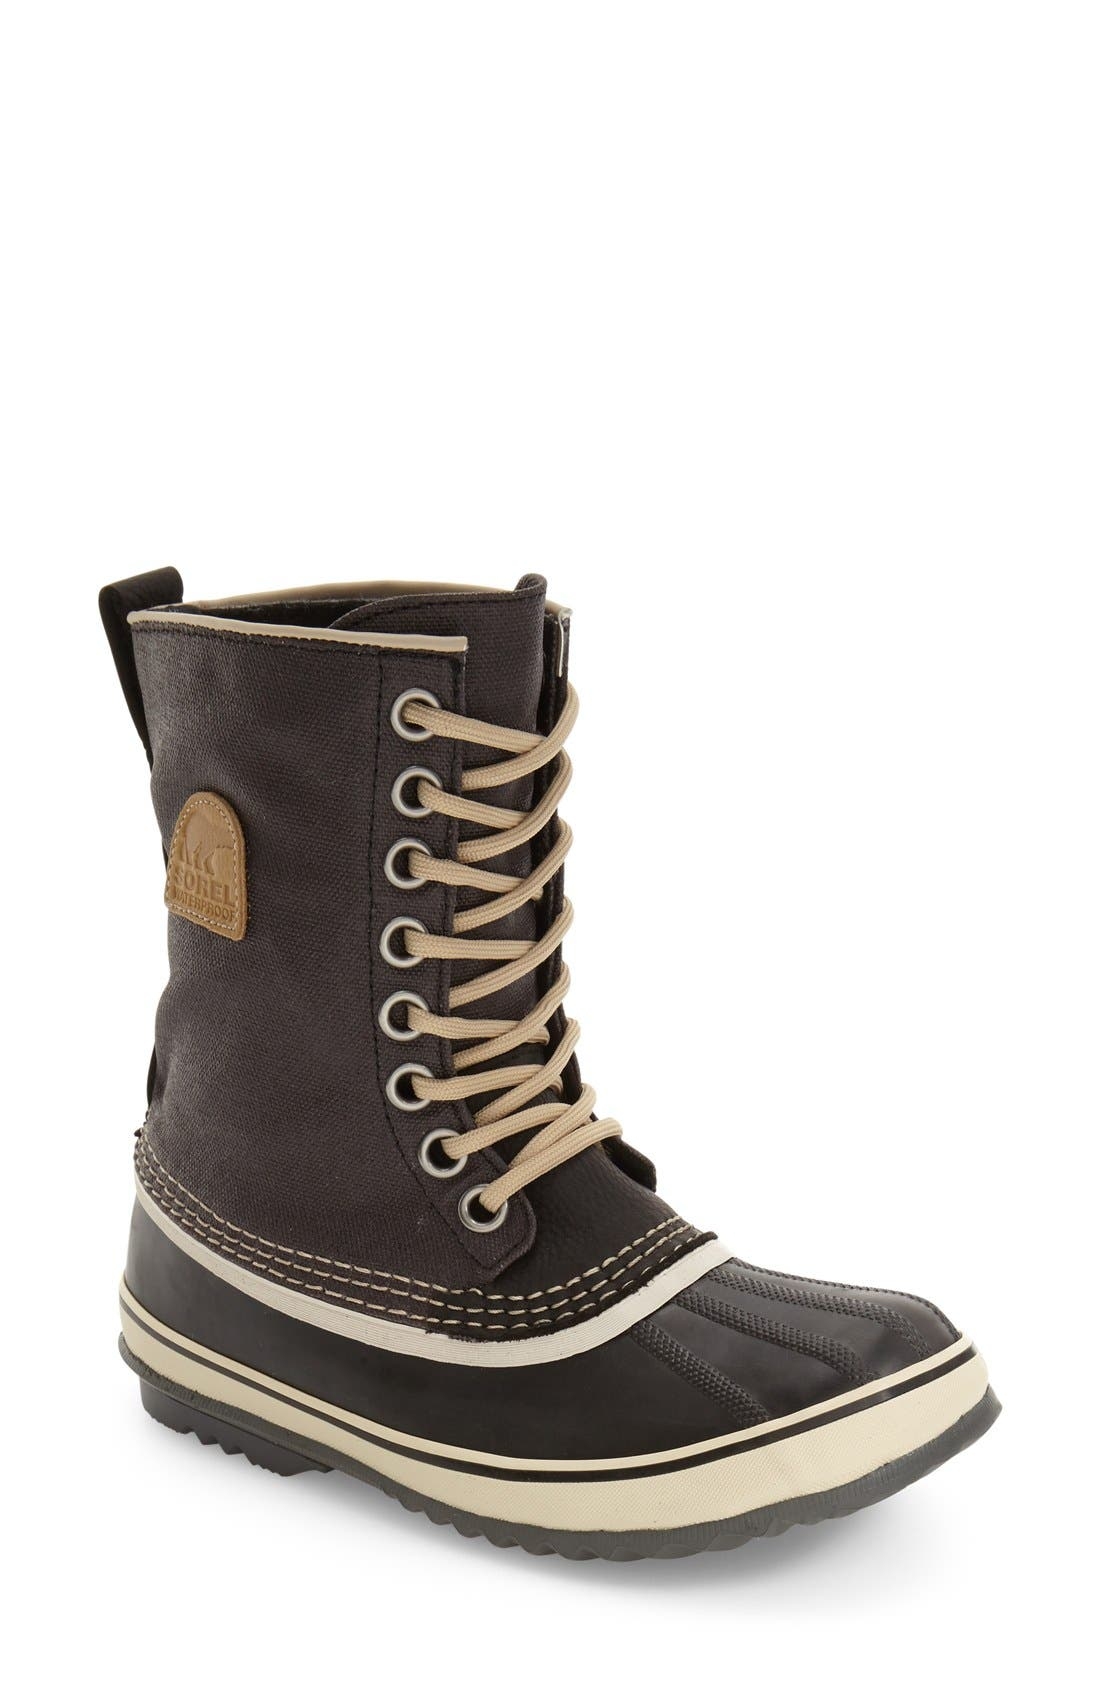 '1964 Premium' Waterproof Boot,                             Main thumbnail 1, color,                             BLACK/ FOSSIL